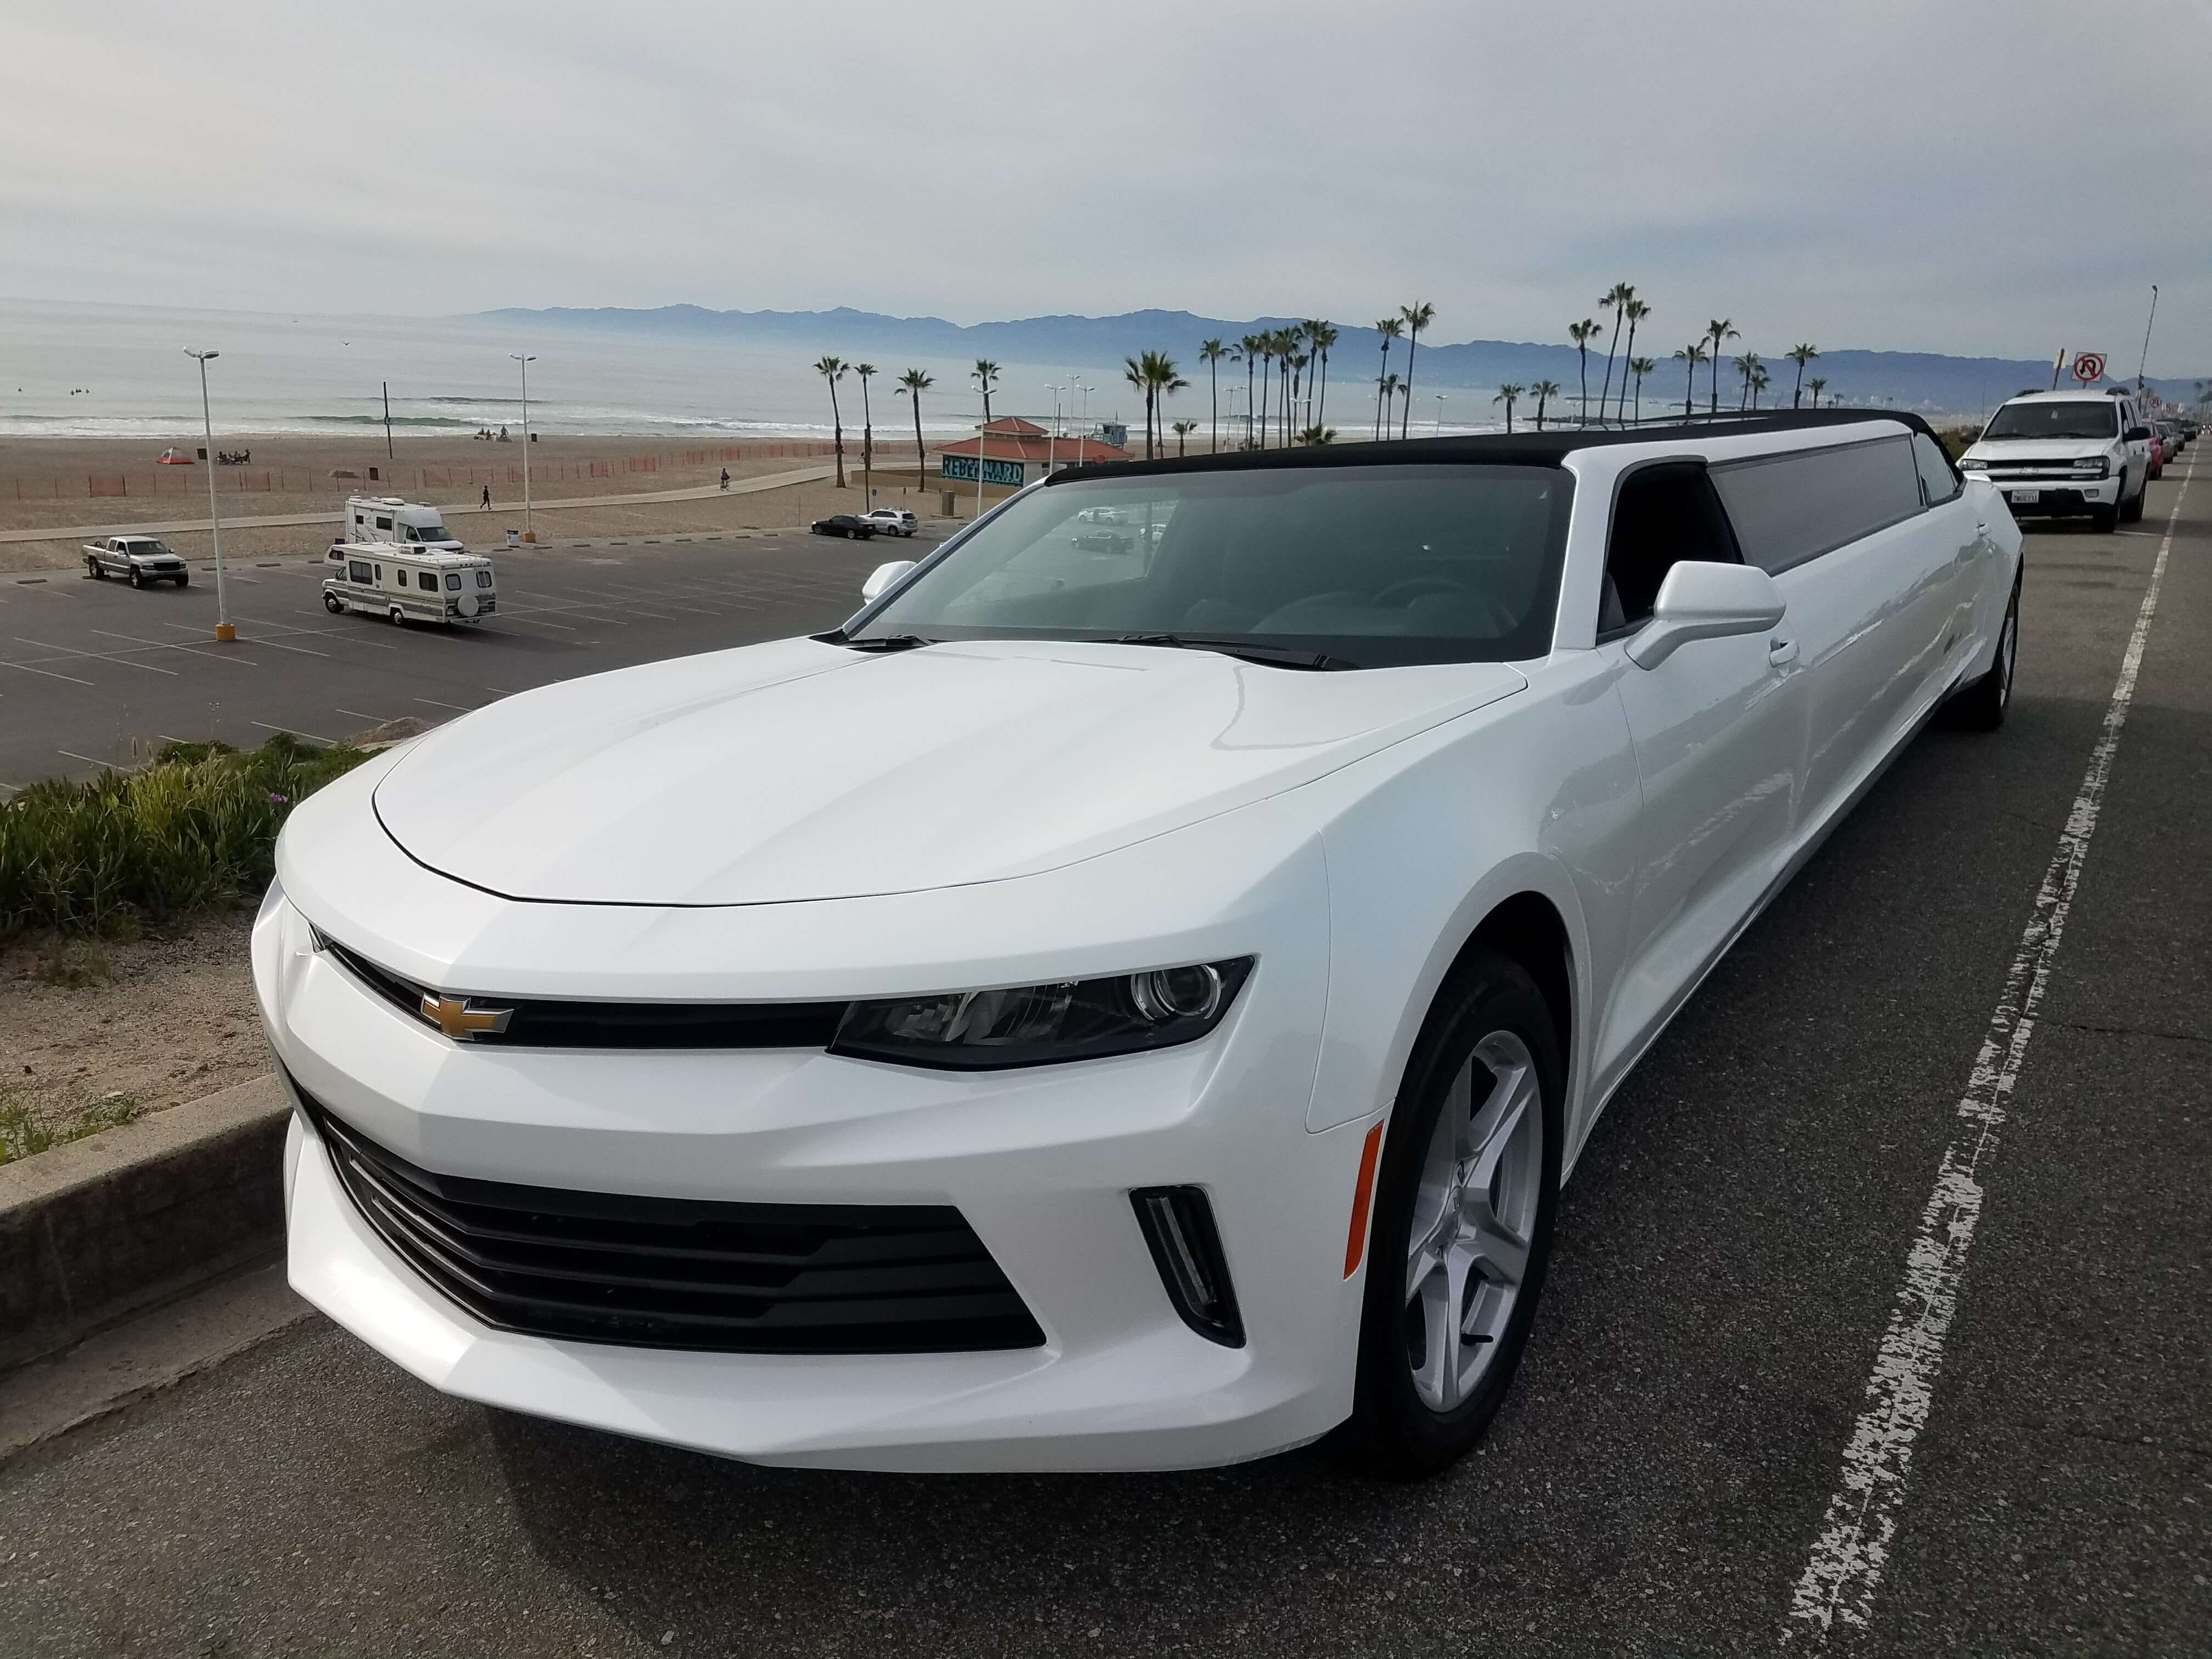 2017 convertible chevy camaro 140 inch limousine for sale 22662. Cars Review. Best American Auto & Cars Review